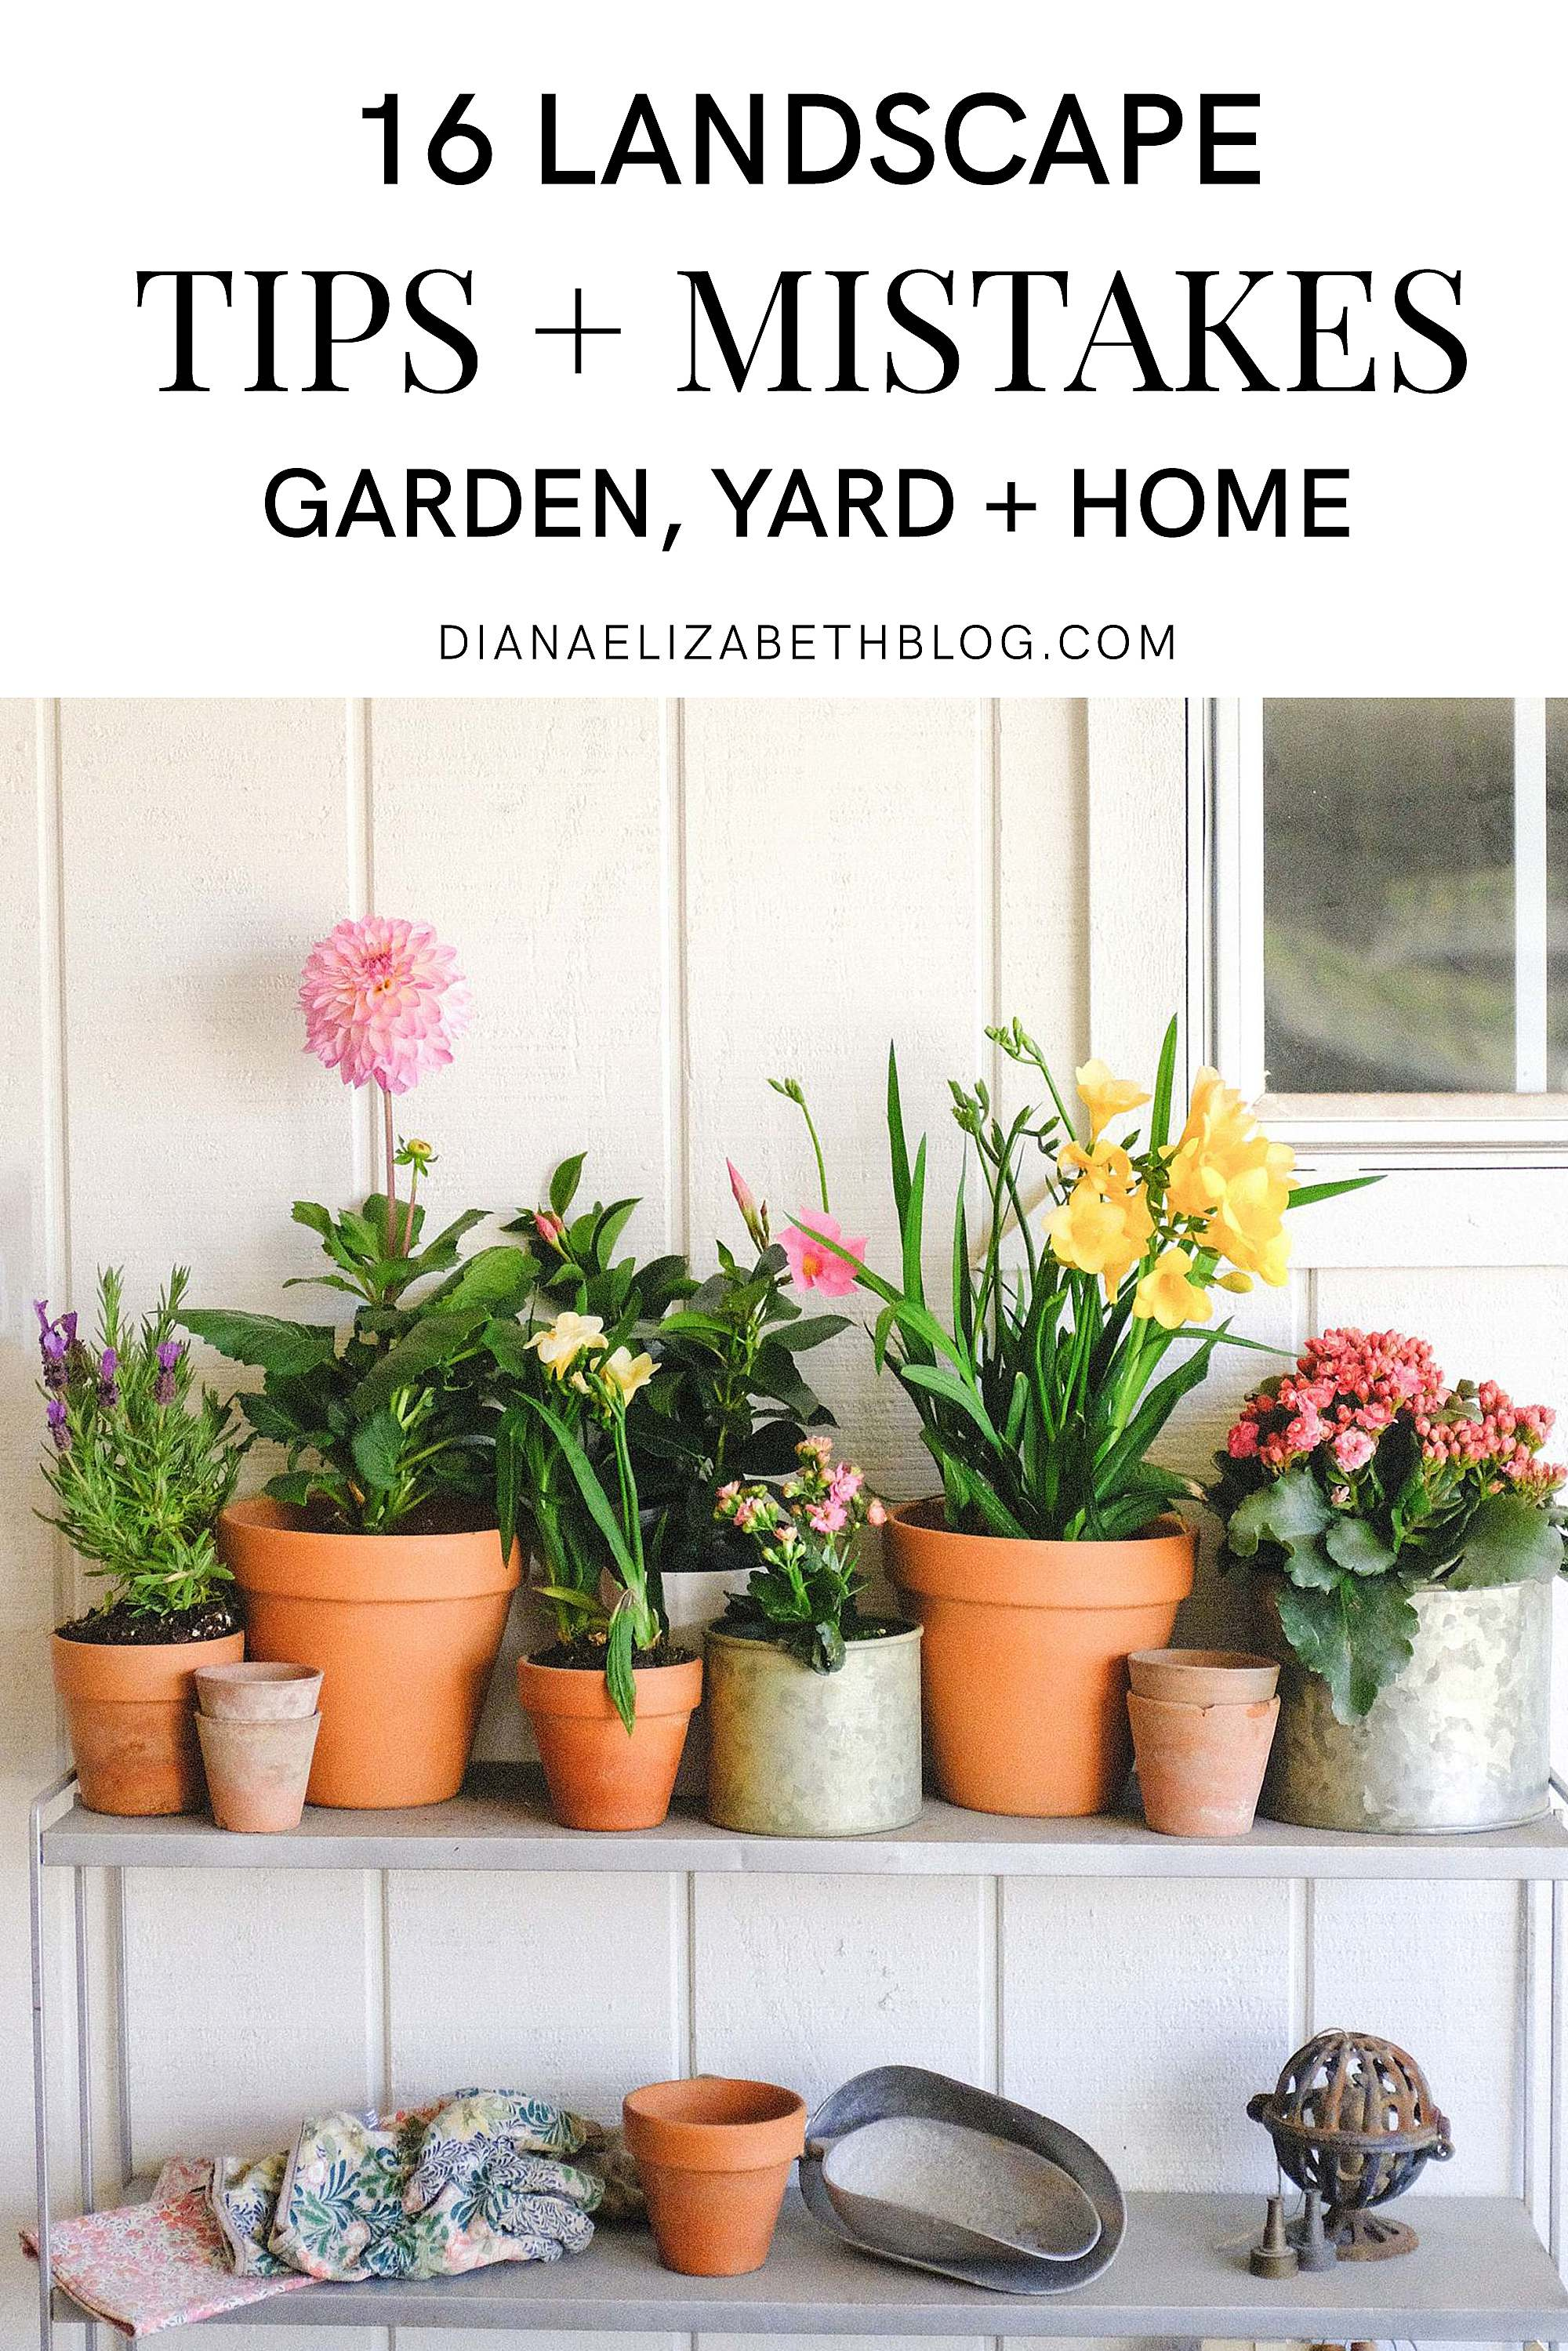 sharing landscape and garden lessons and mistakes we made that were expensive so you can avoid them!